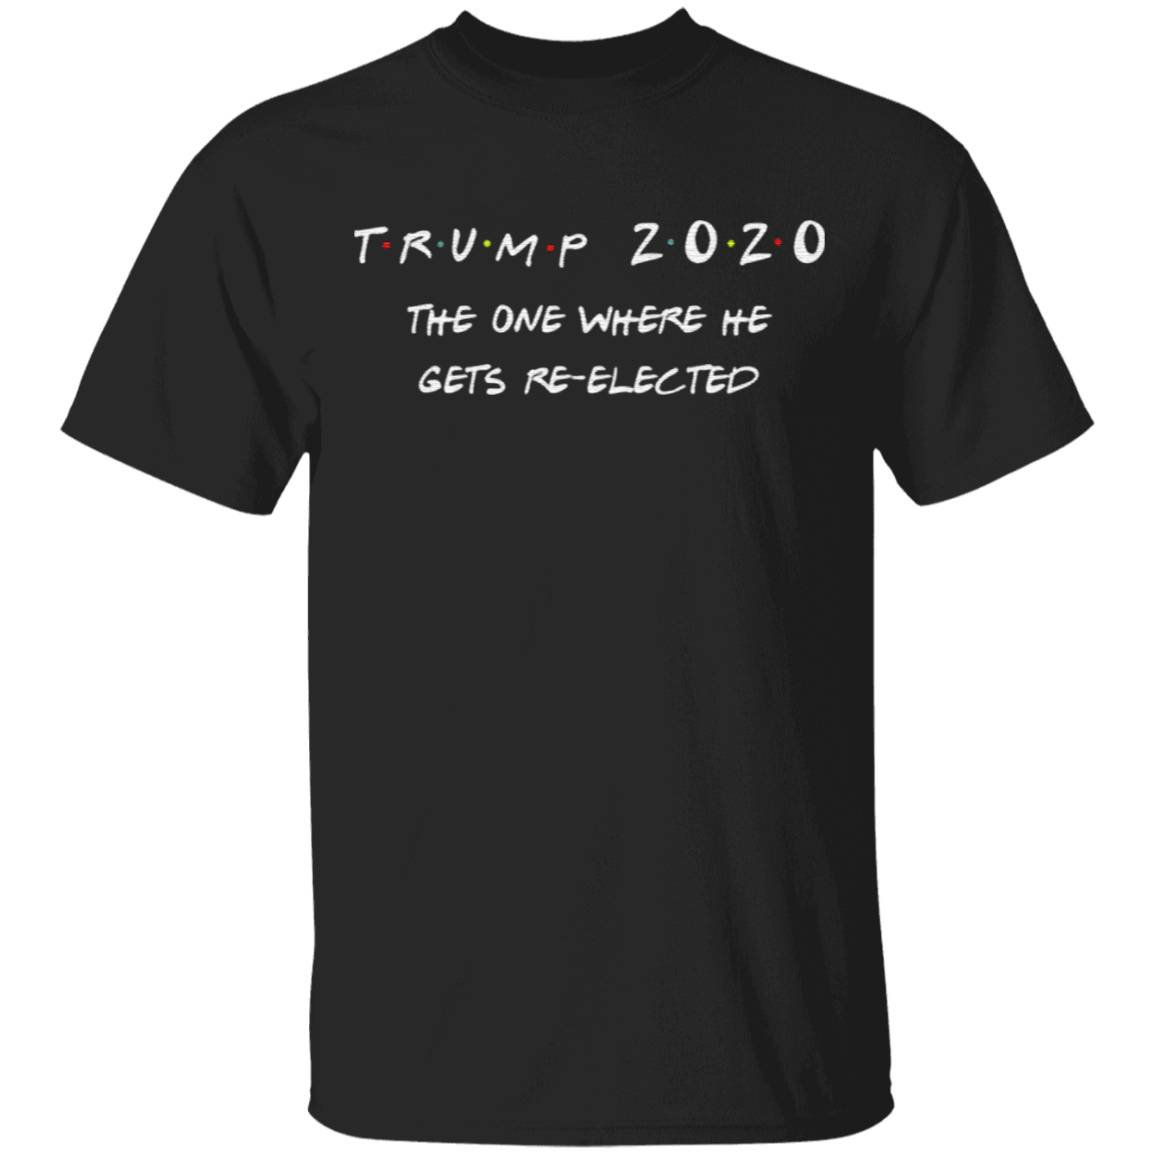 Trump 2020 the one where he gets reelected tshirt